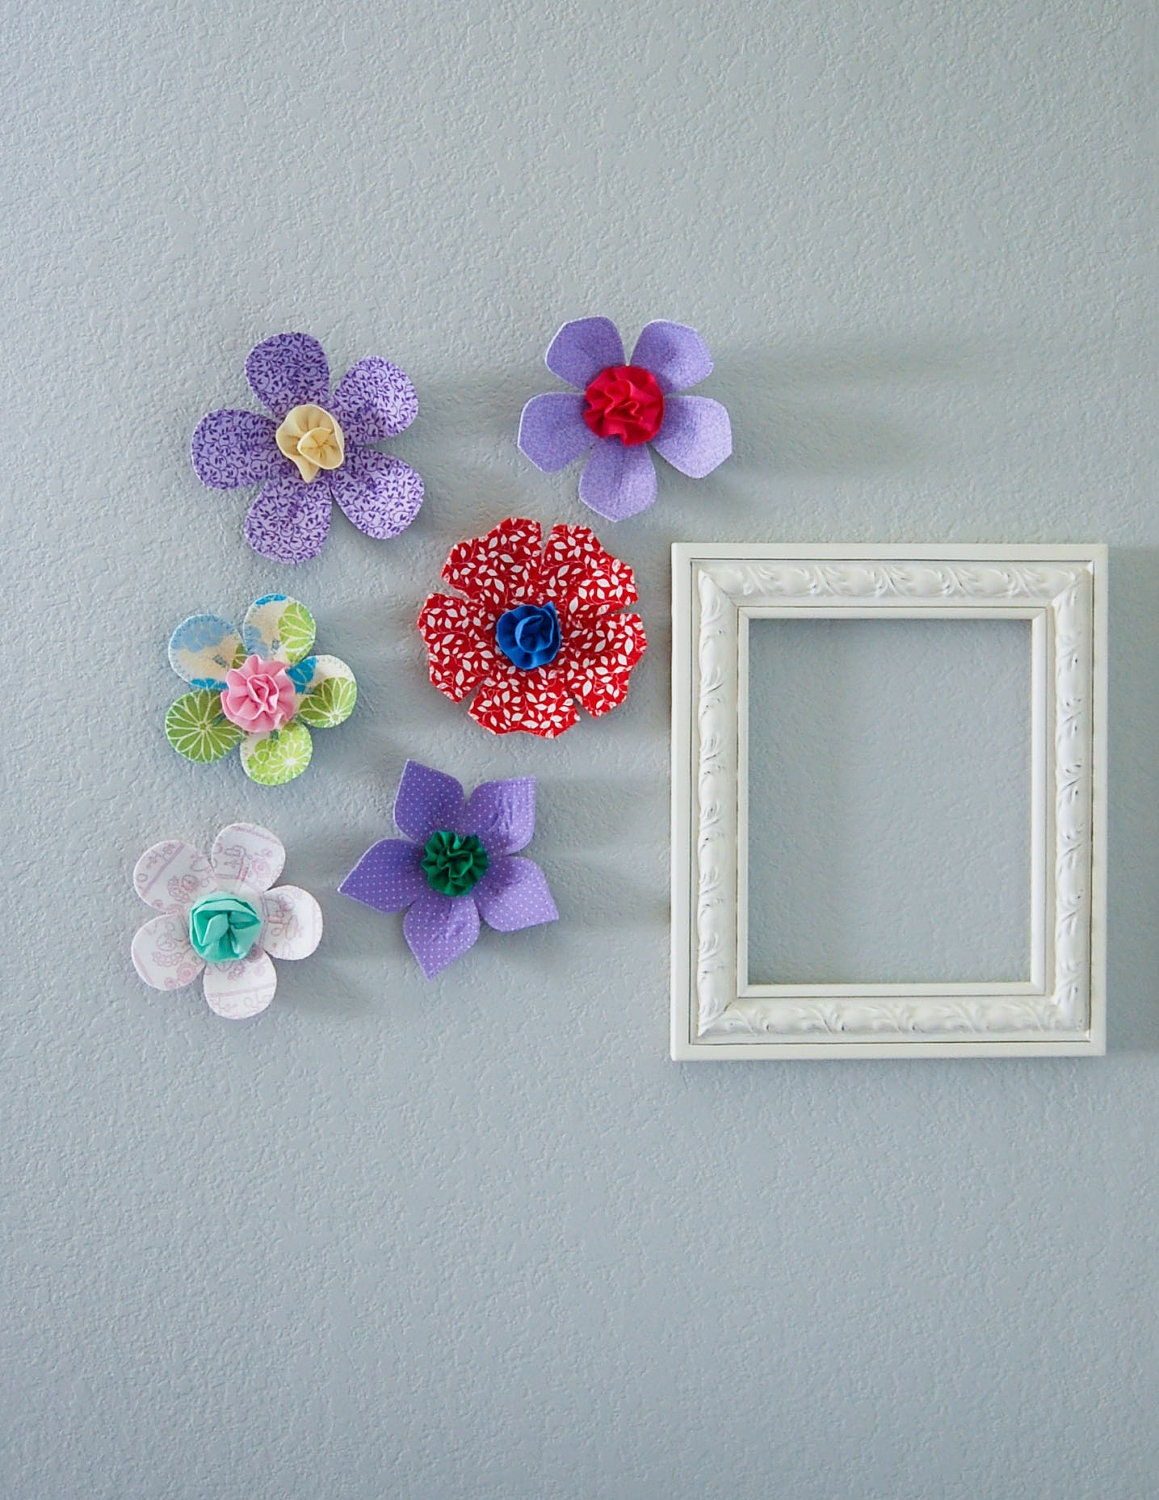 fabric wall flower 3d wall art wall decor fabric flower